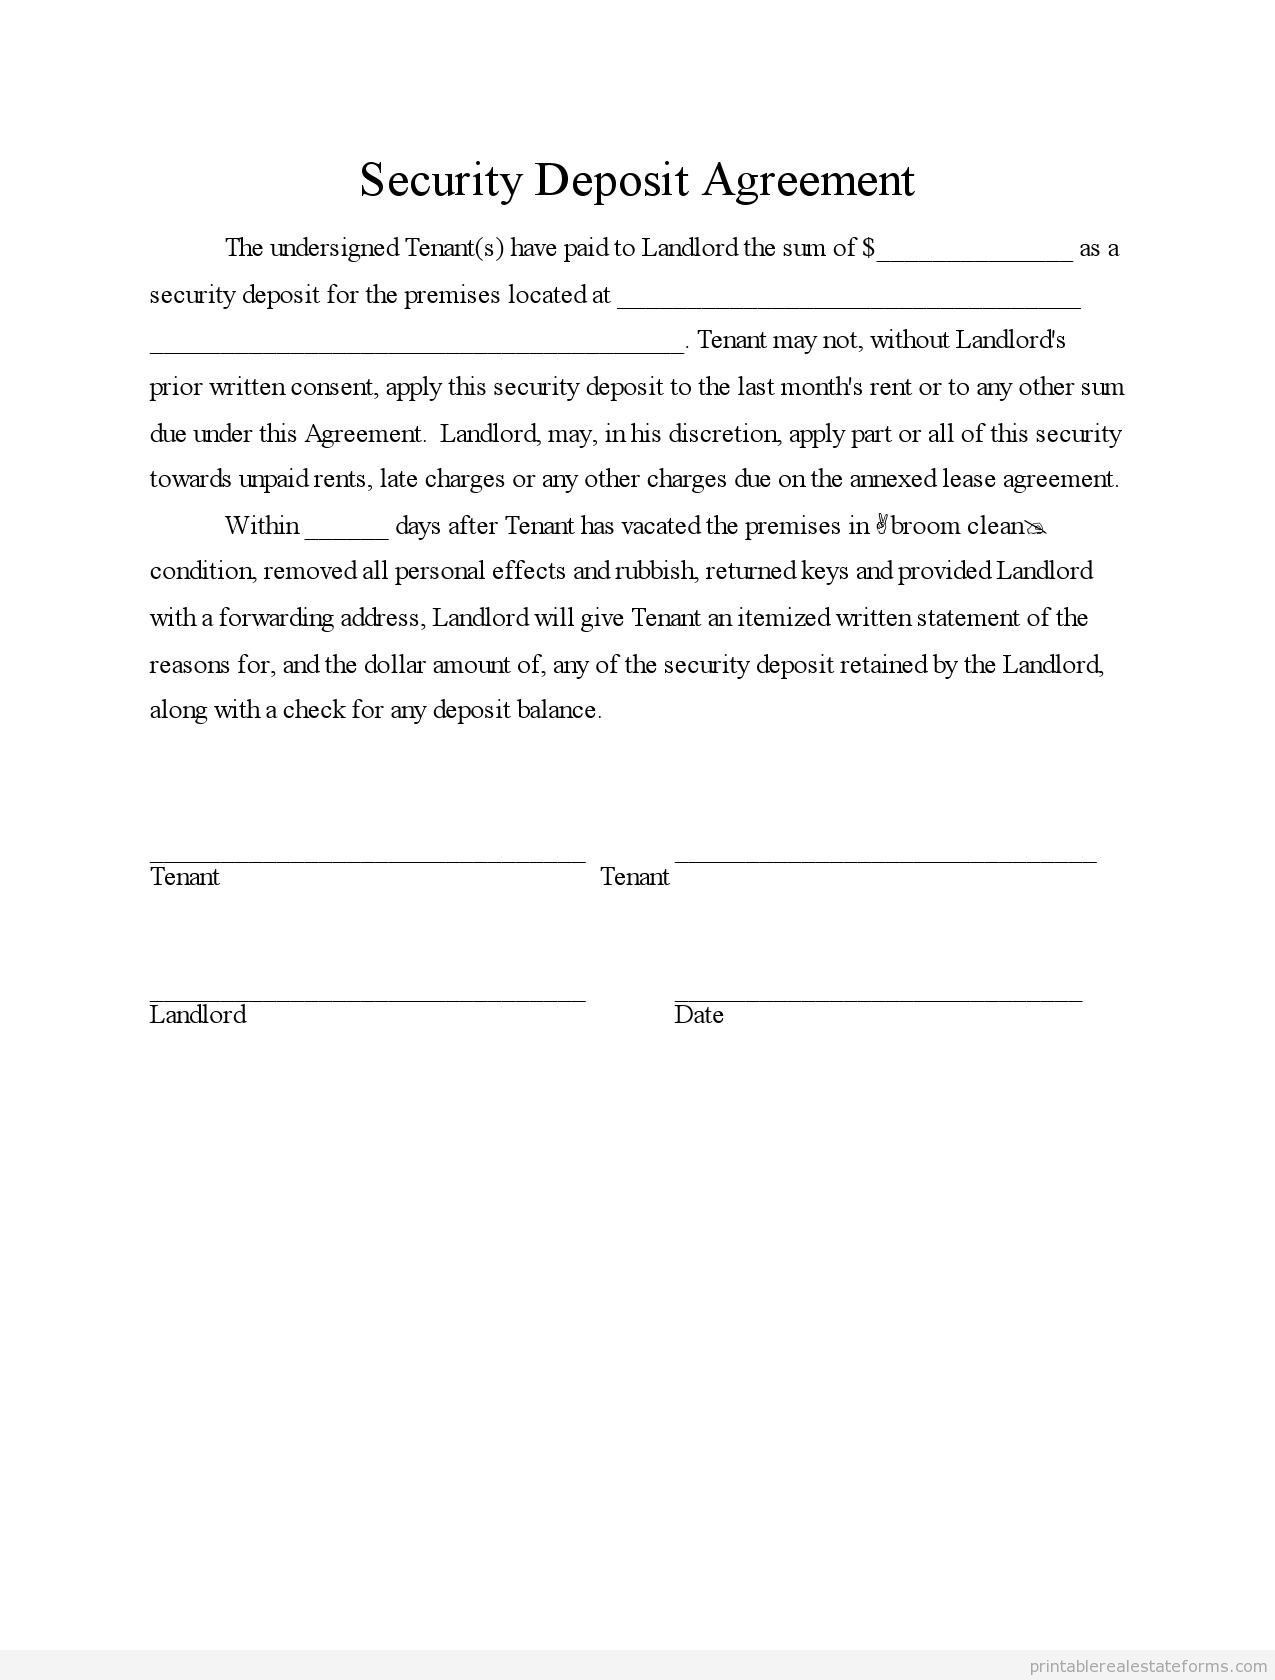 Sample Printable security deposit agreement Form – Security Agreement Template